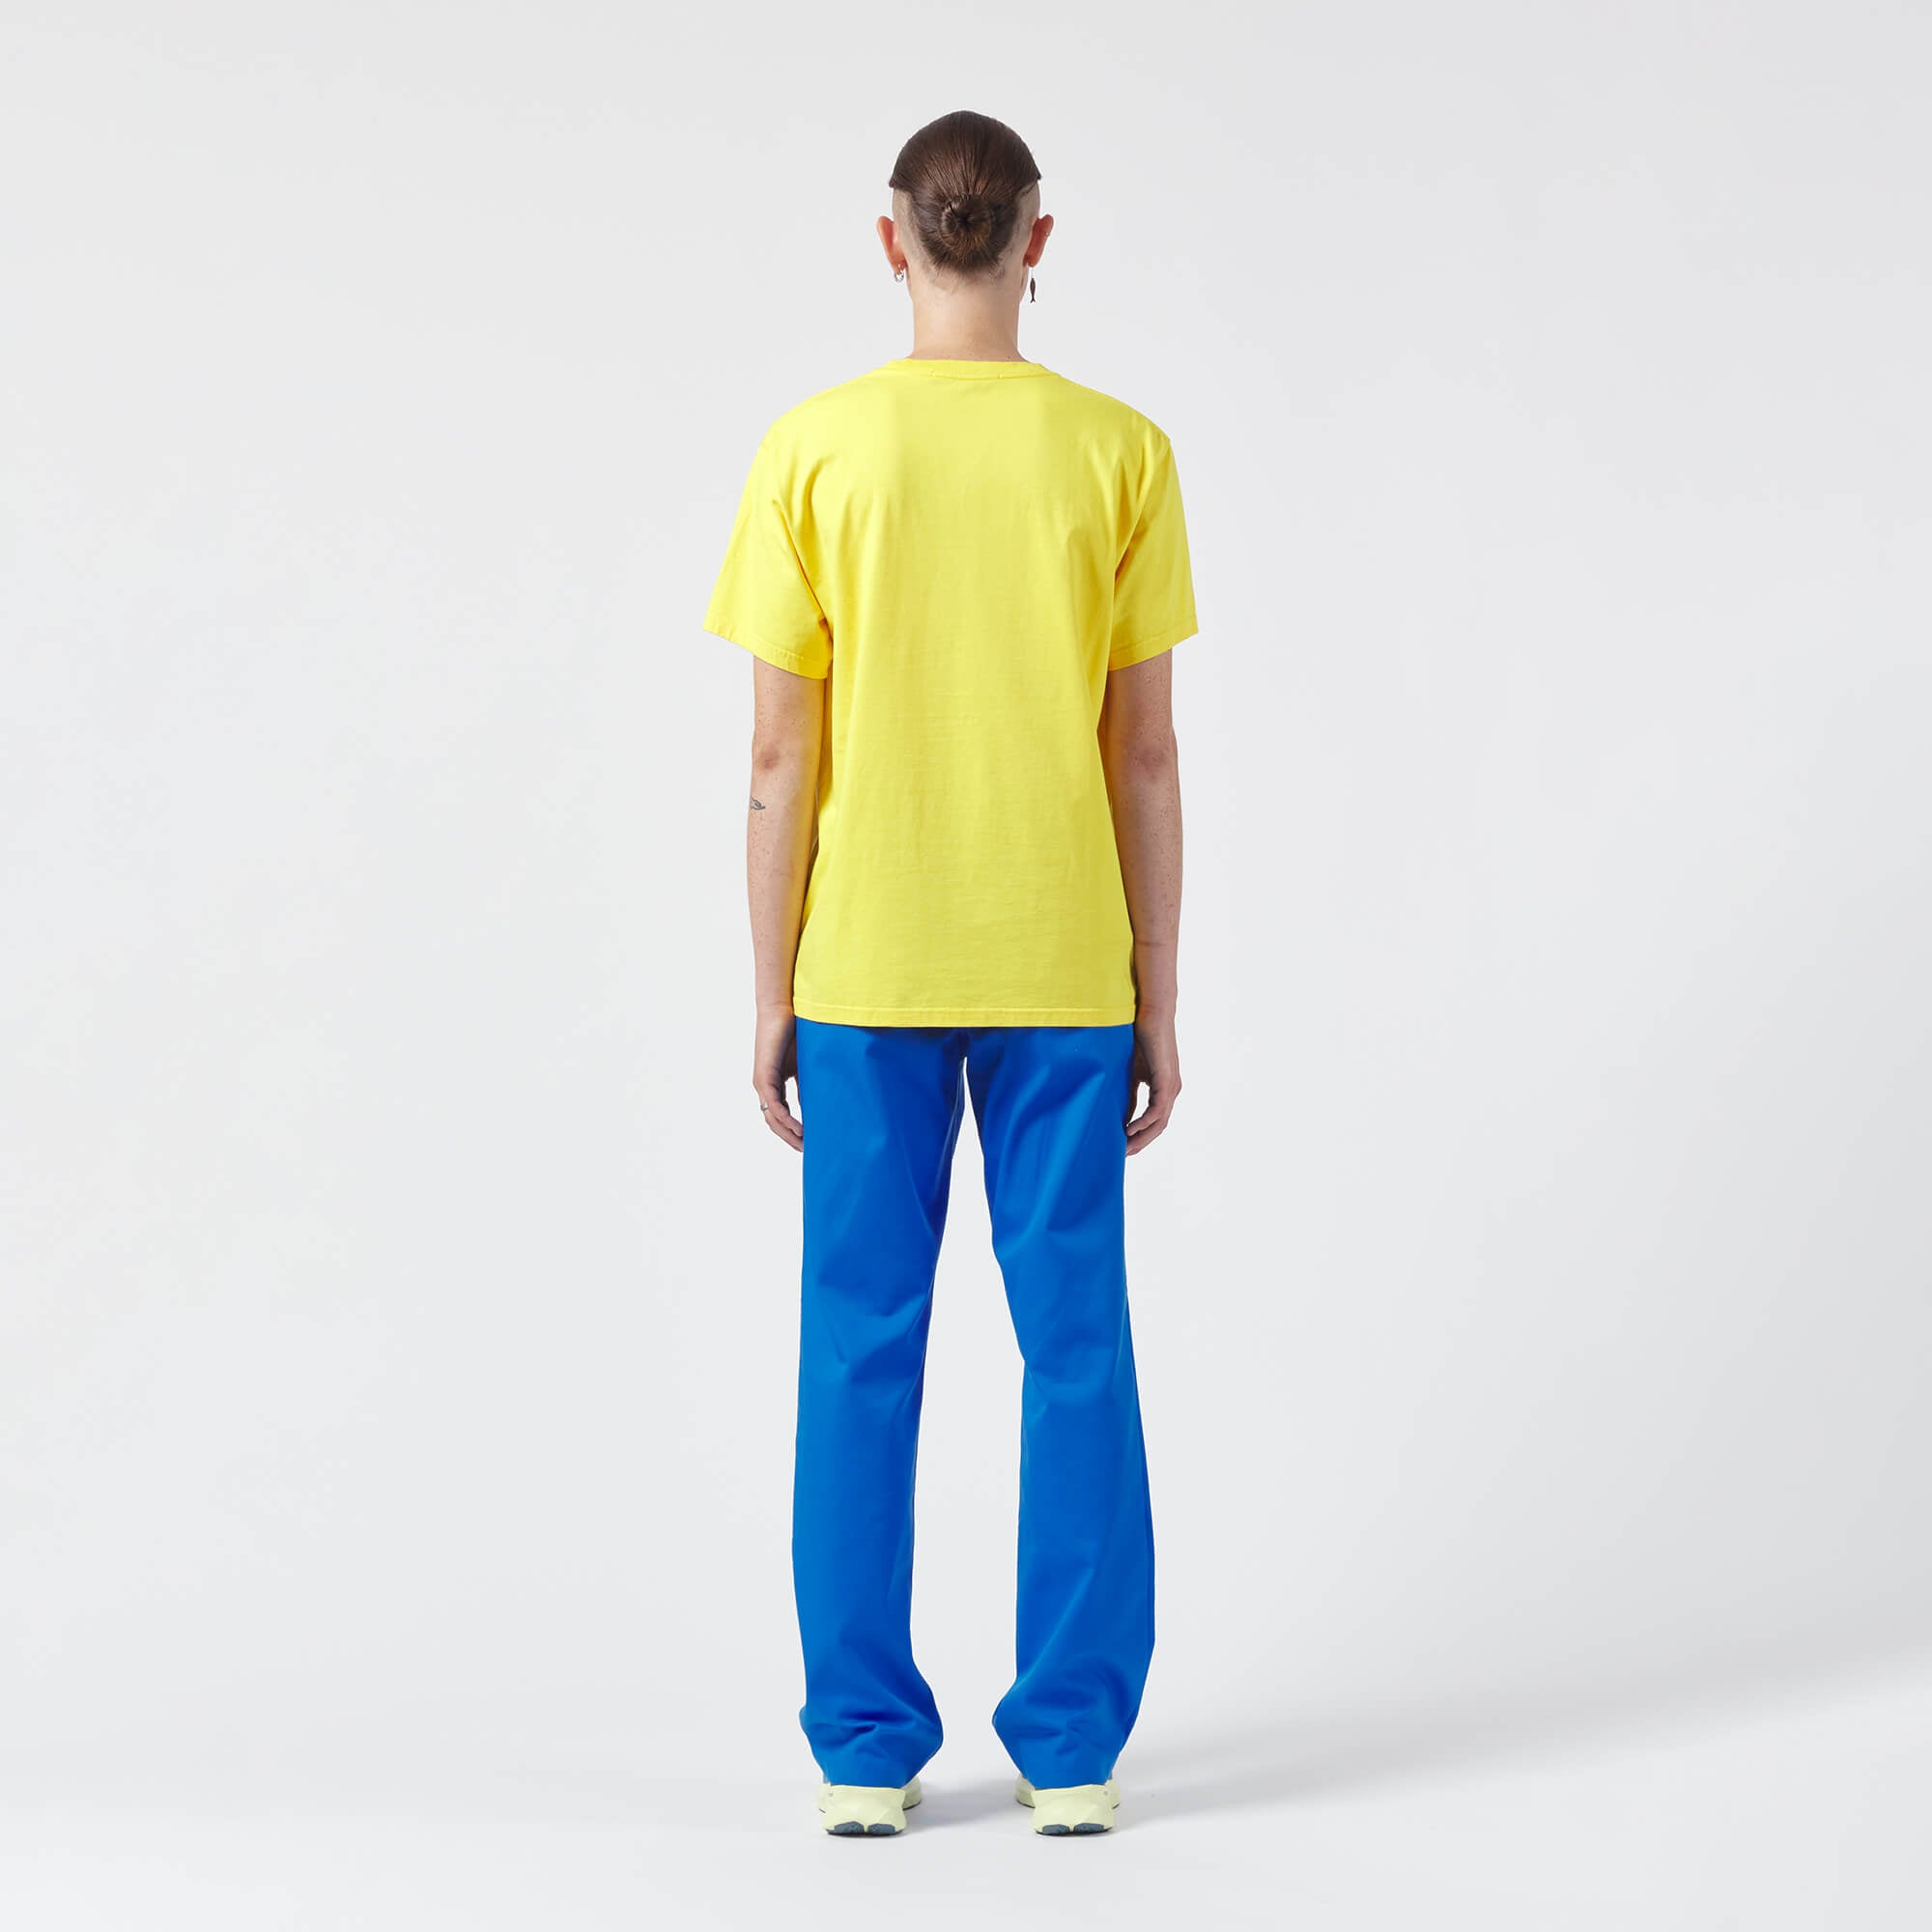 AFFIX WORKS AFFXWRKS S.E.S. INC T-SHIRT YELLOW